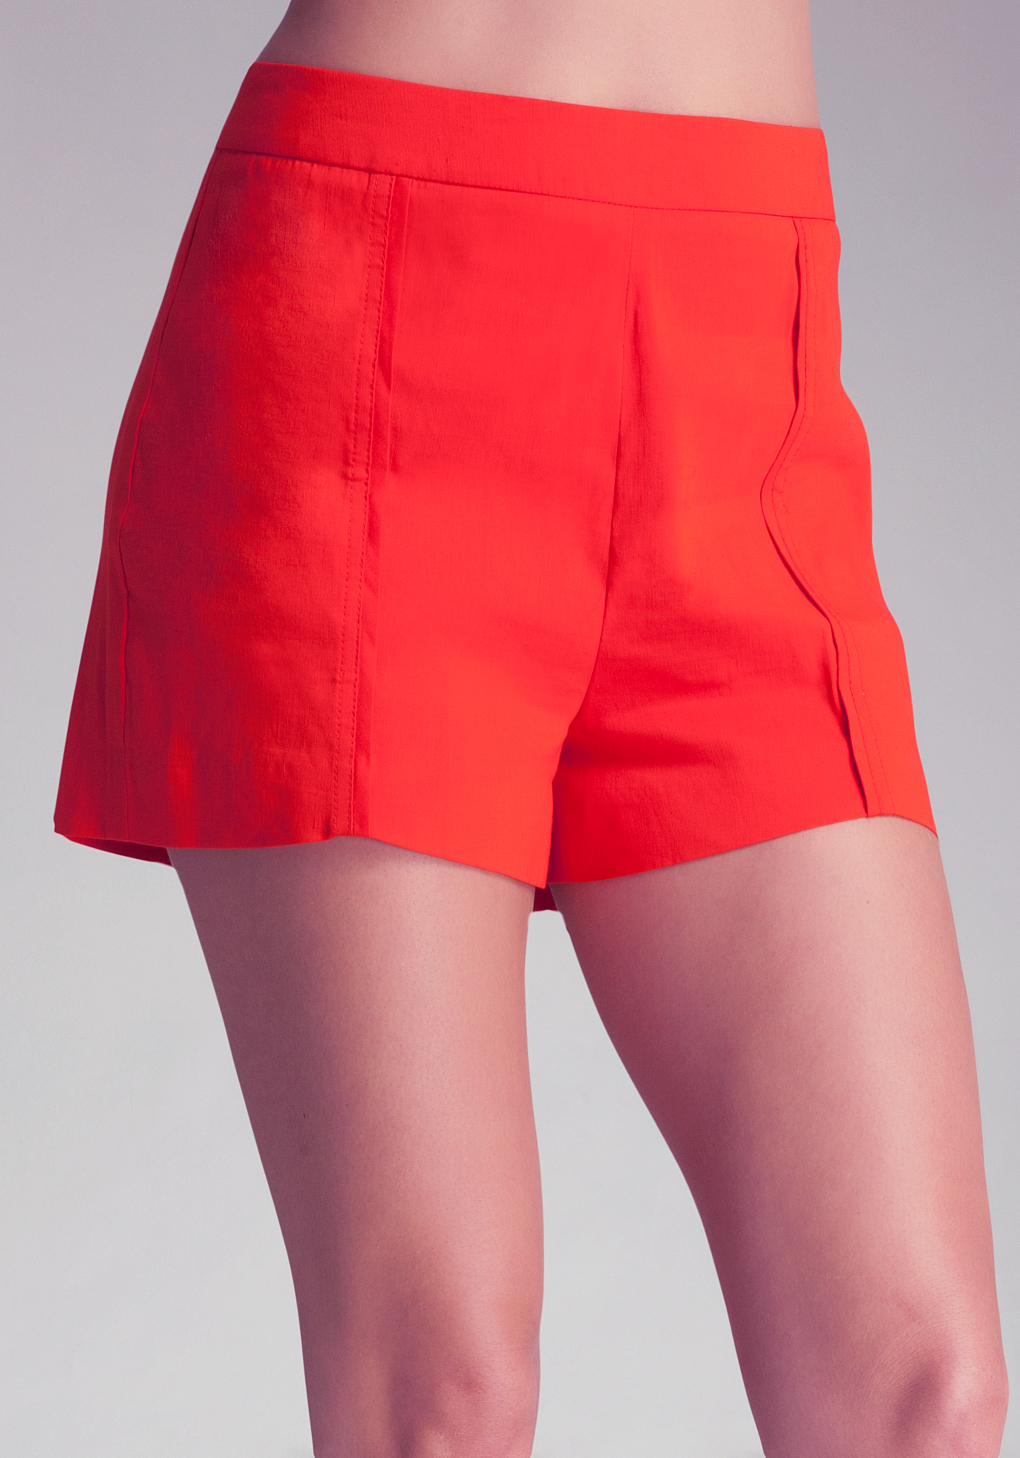 Bebe Contrast Origami Shorts in Red | Lyst - photo#11